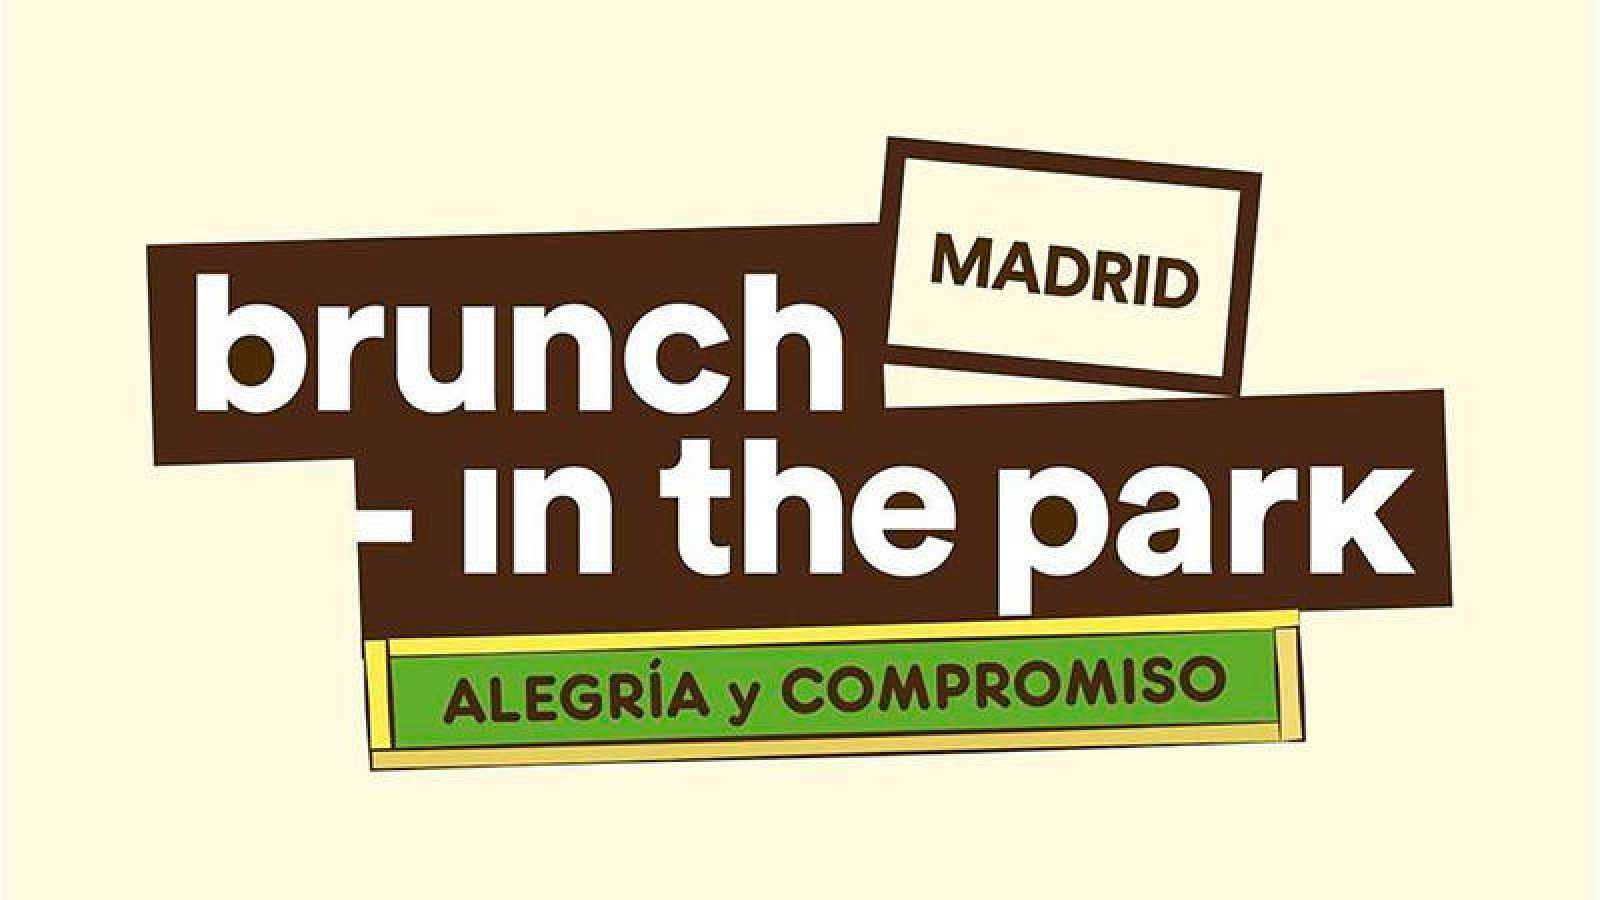 Brunch In The Park regresa a Madrid